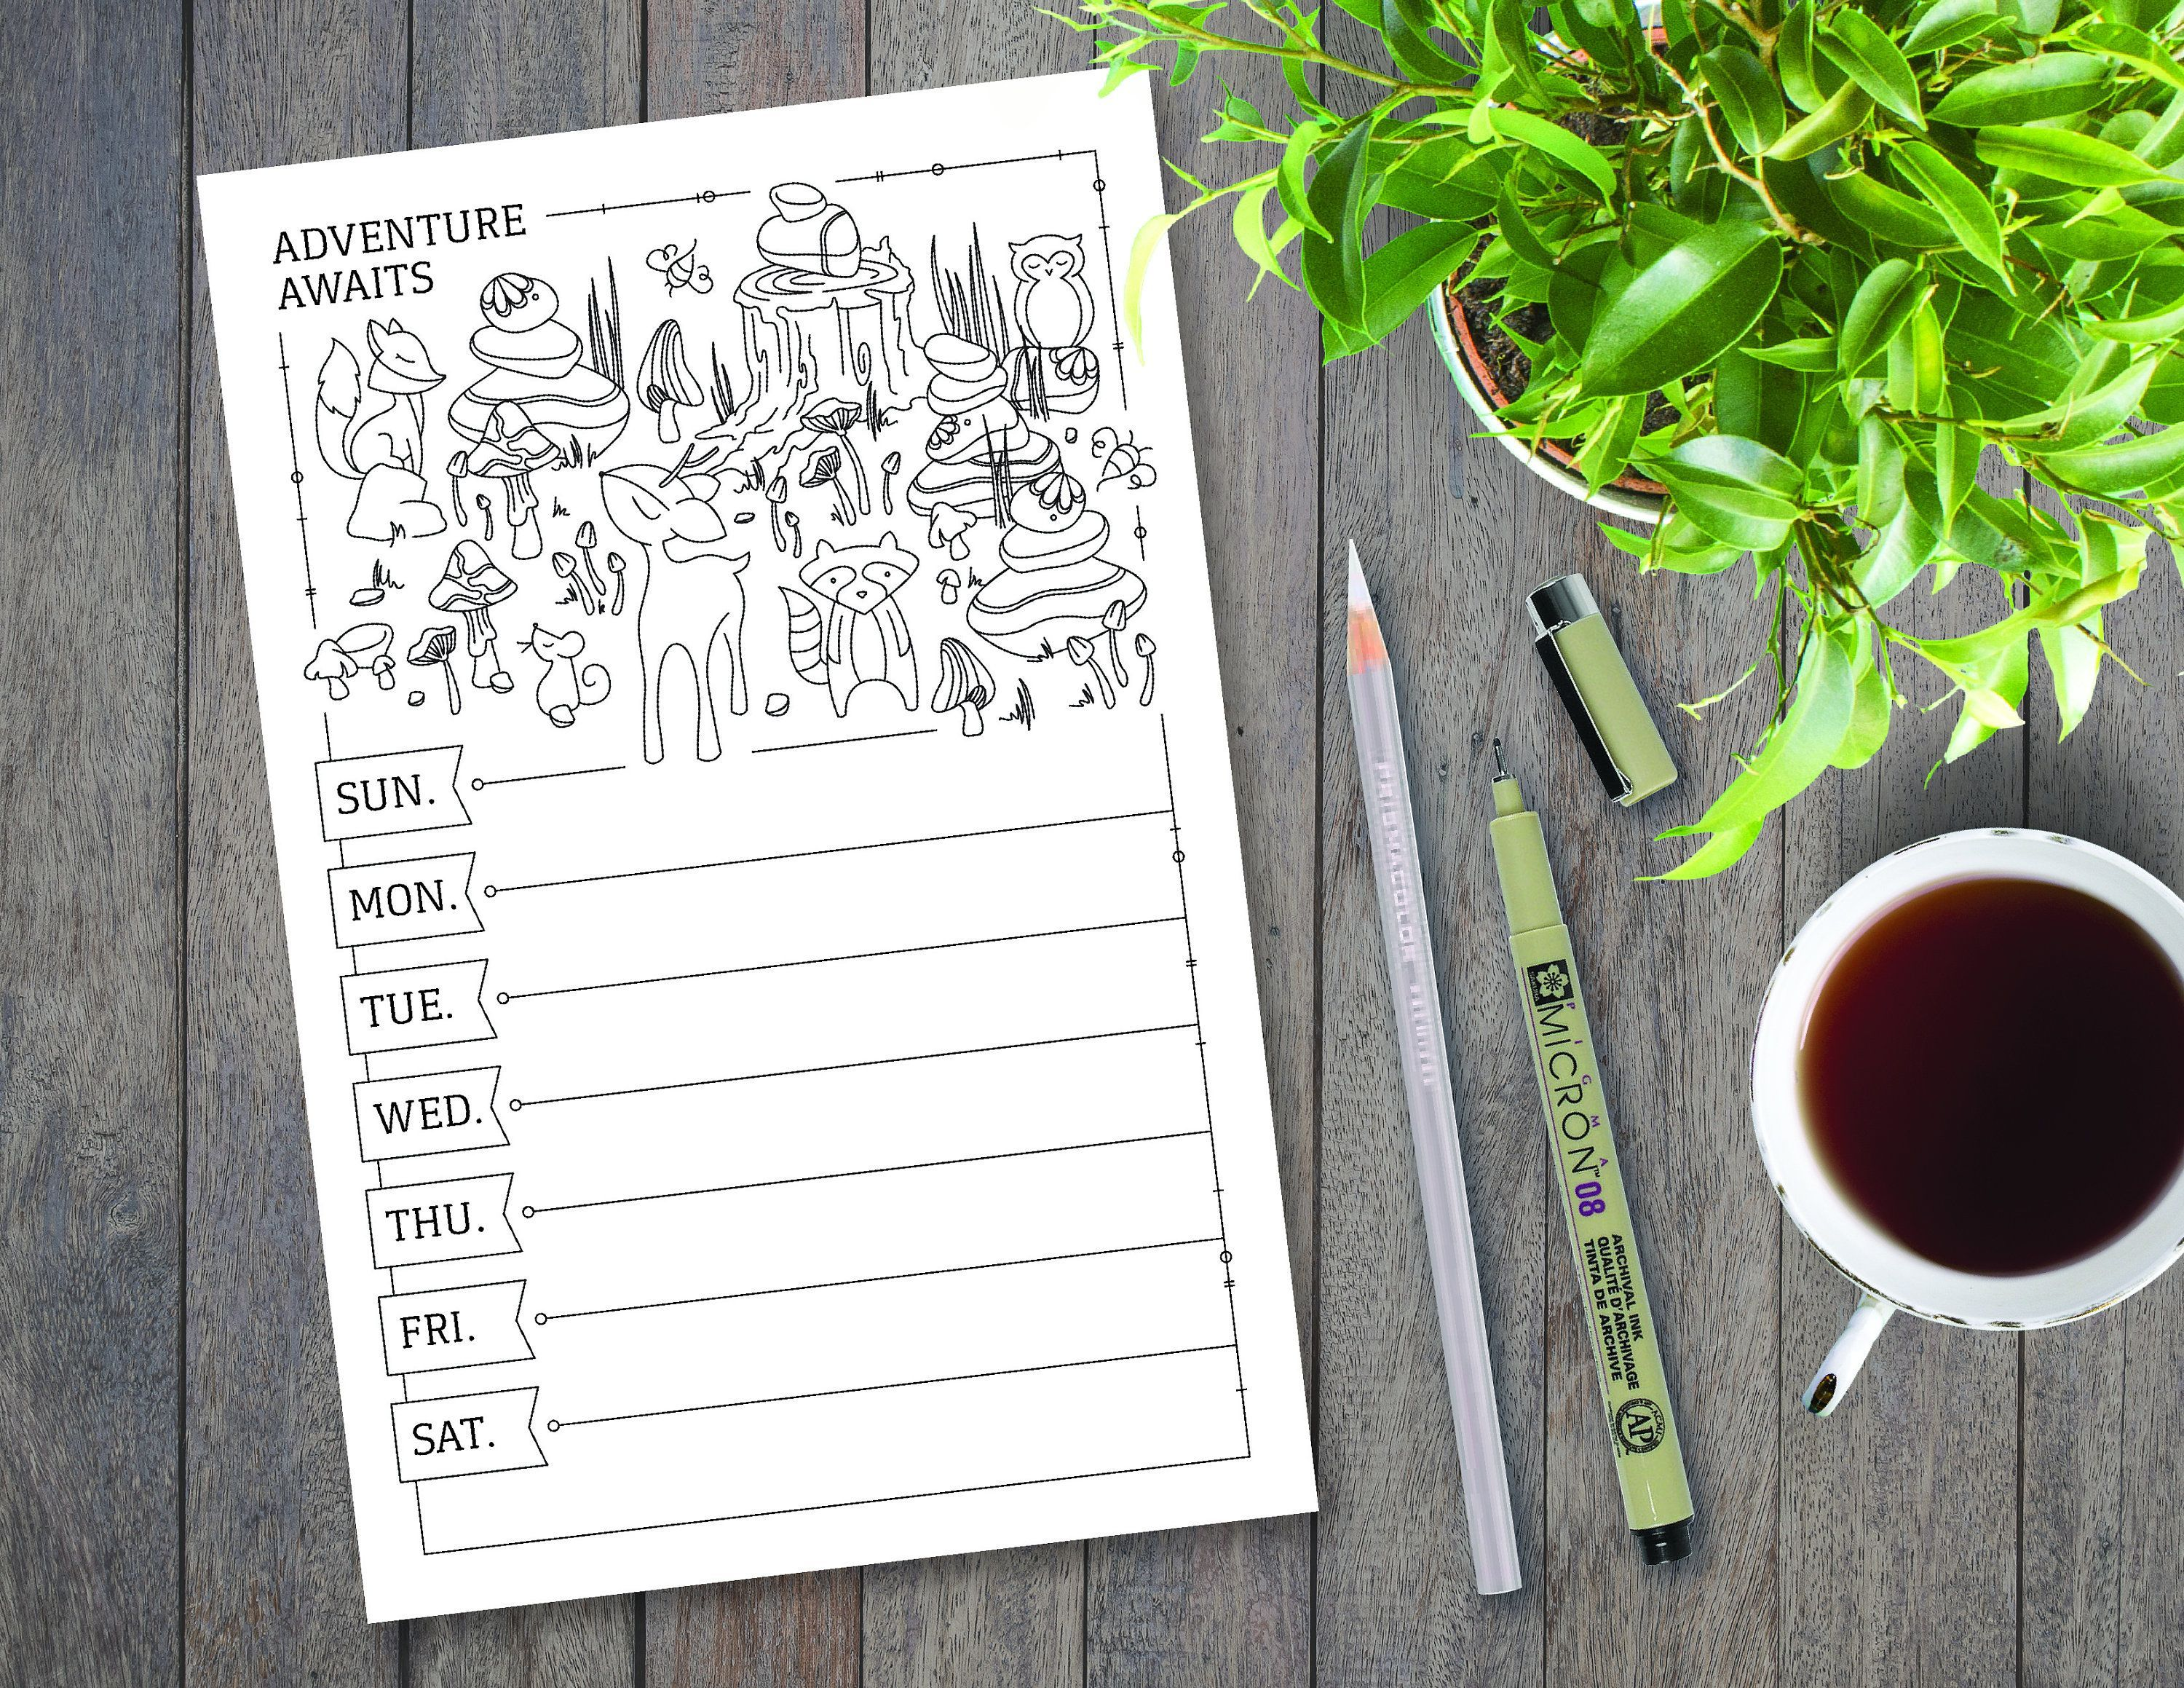 Weekly Meal Planner Printable Color Yourself Fruit Illustrations Meal Planning Grocery Li Weekly Meal Planner Printable Color Yourself Fruit Illustrations Meal Planning G...